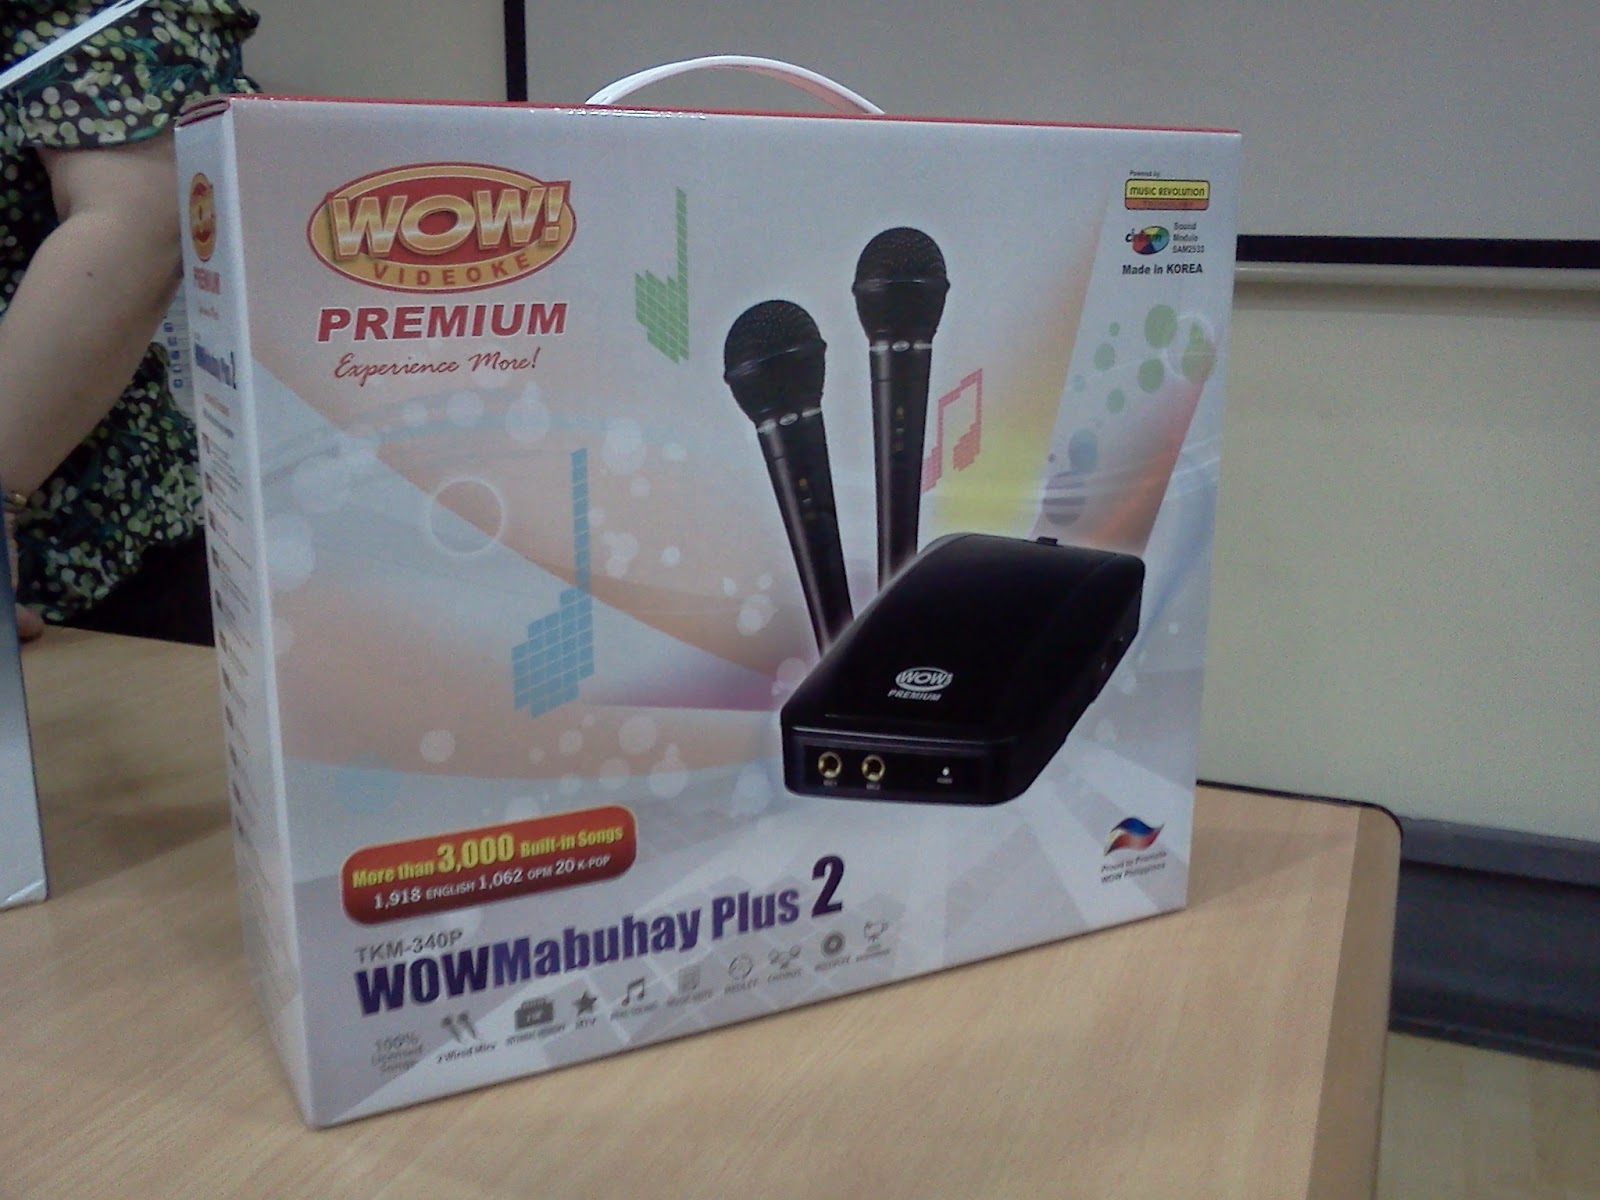 Jgtech Lifestyle Wow Videoke Premium Product Line 2012 Machine Wiring Some Would Like The Convenience Of Wireless So They Will Take Mabuhay Others A Value Packed Unit That Is Reasonably Priced